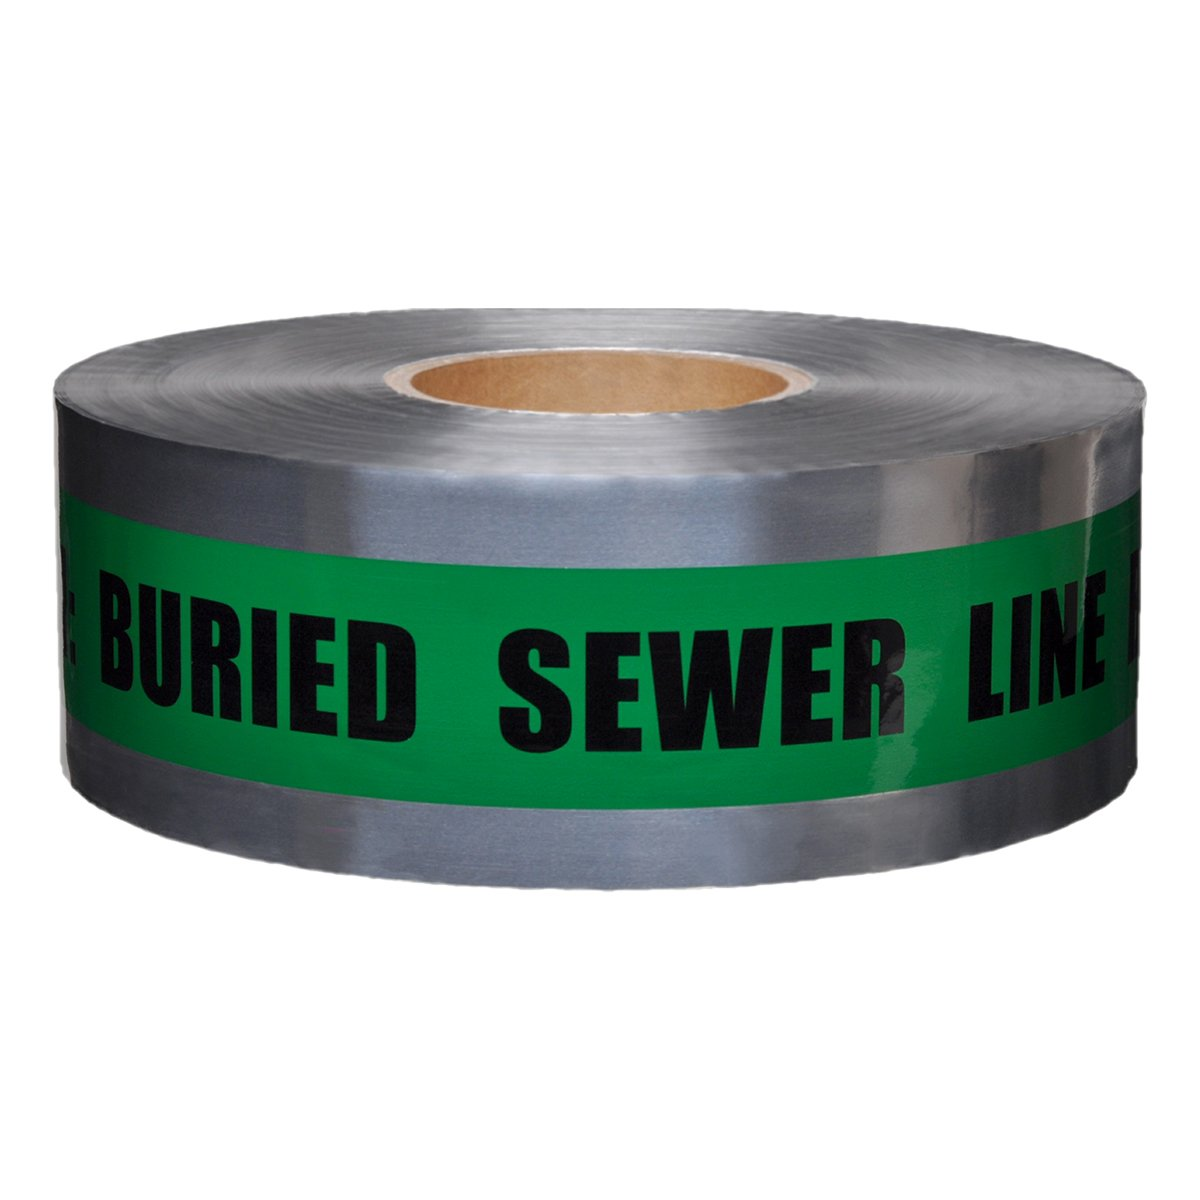 Presco Underground Detectable Warning Tape: 3 in. x 333.3 yds. (Green with Black''CAUTION BURIED SEWER LINE BELOW'' printing)